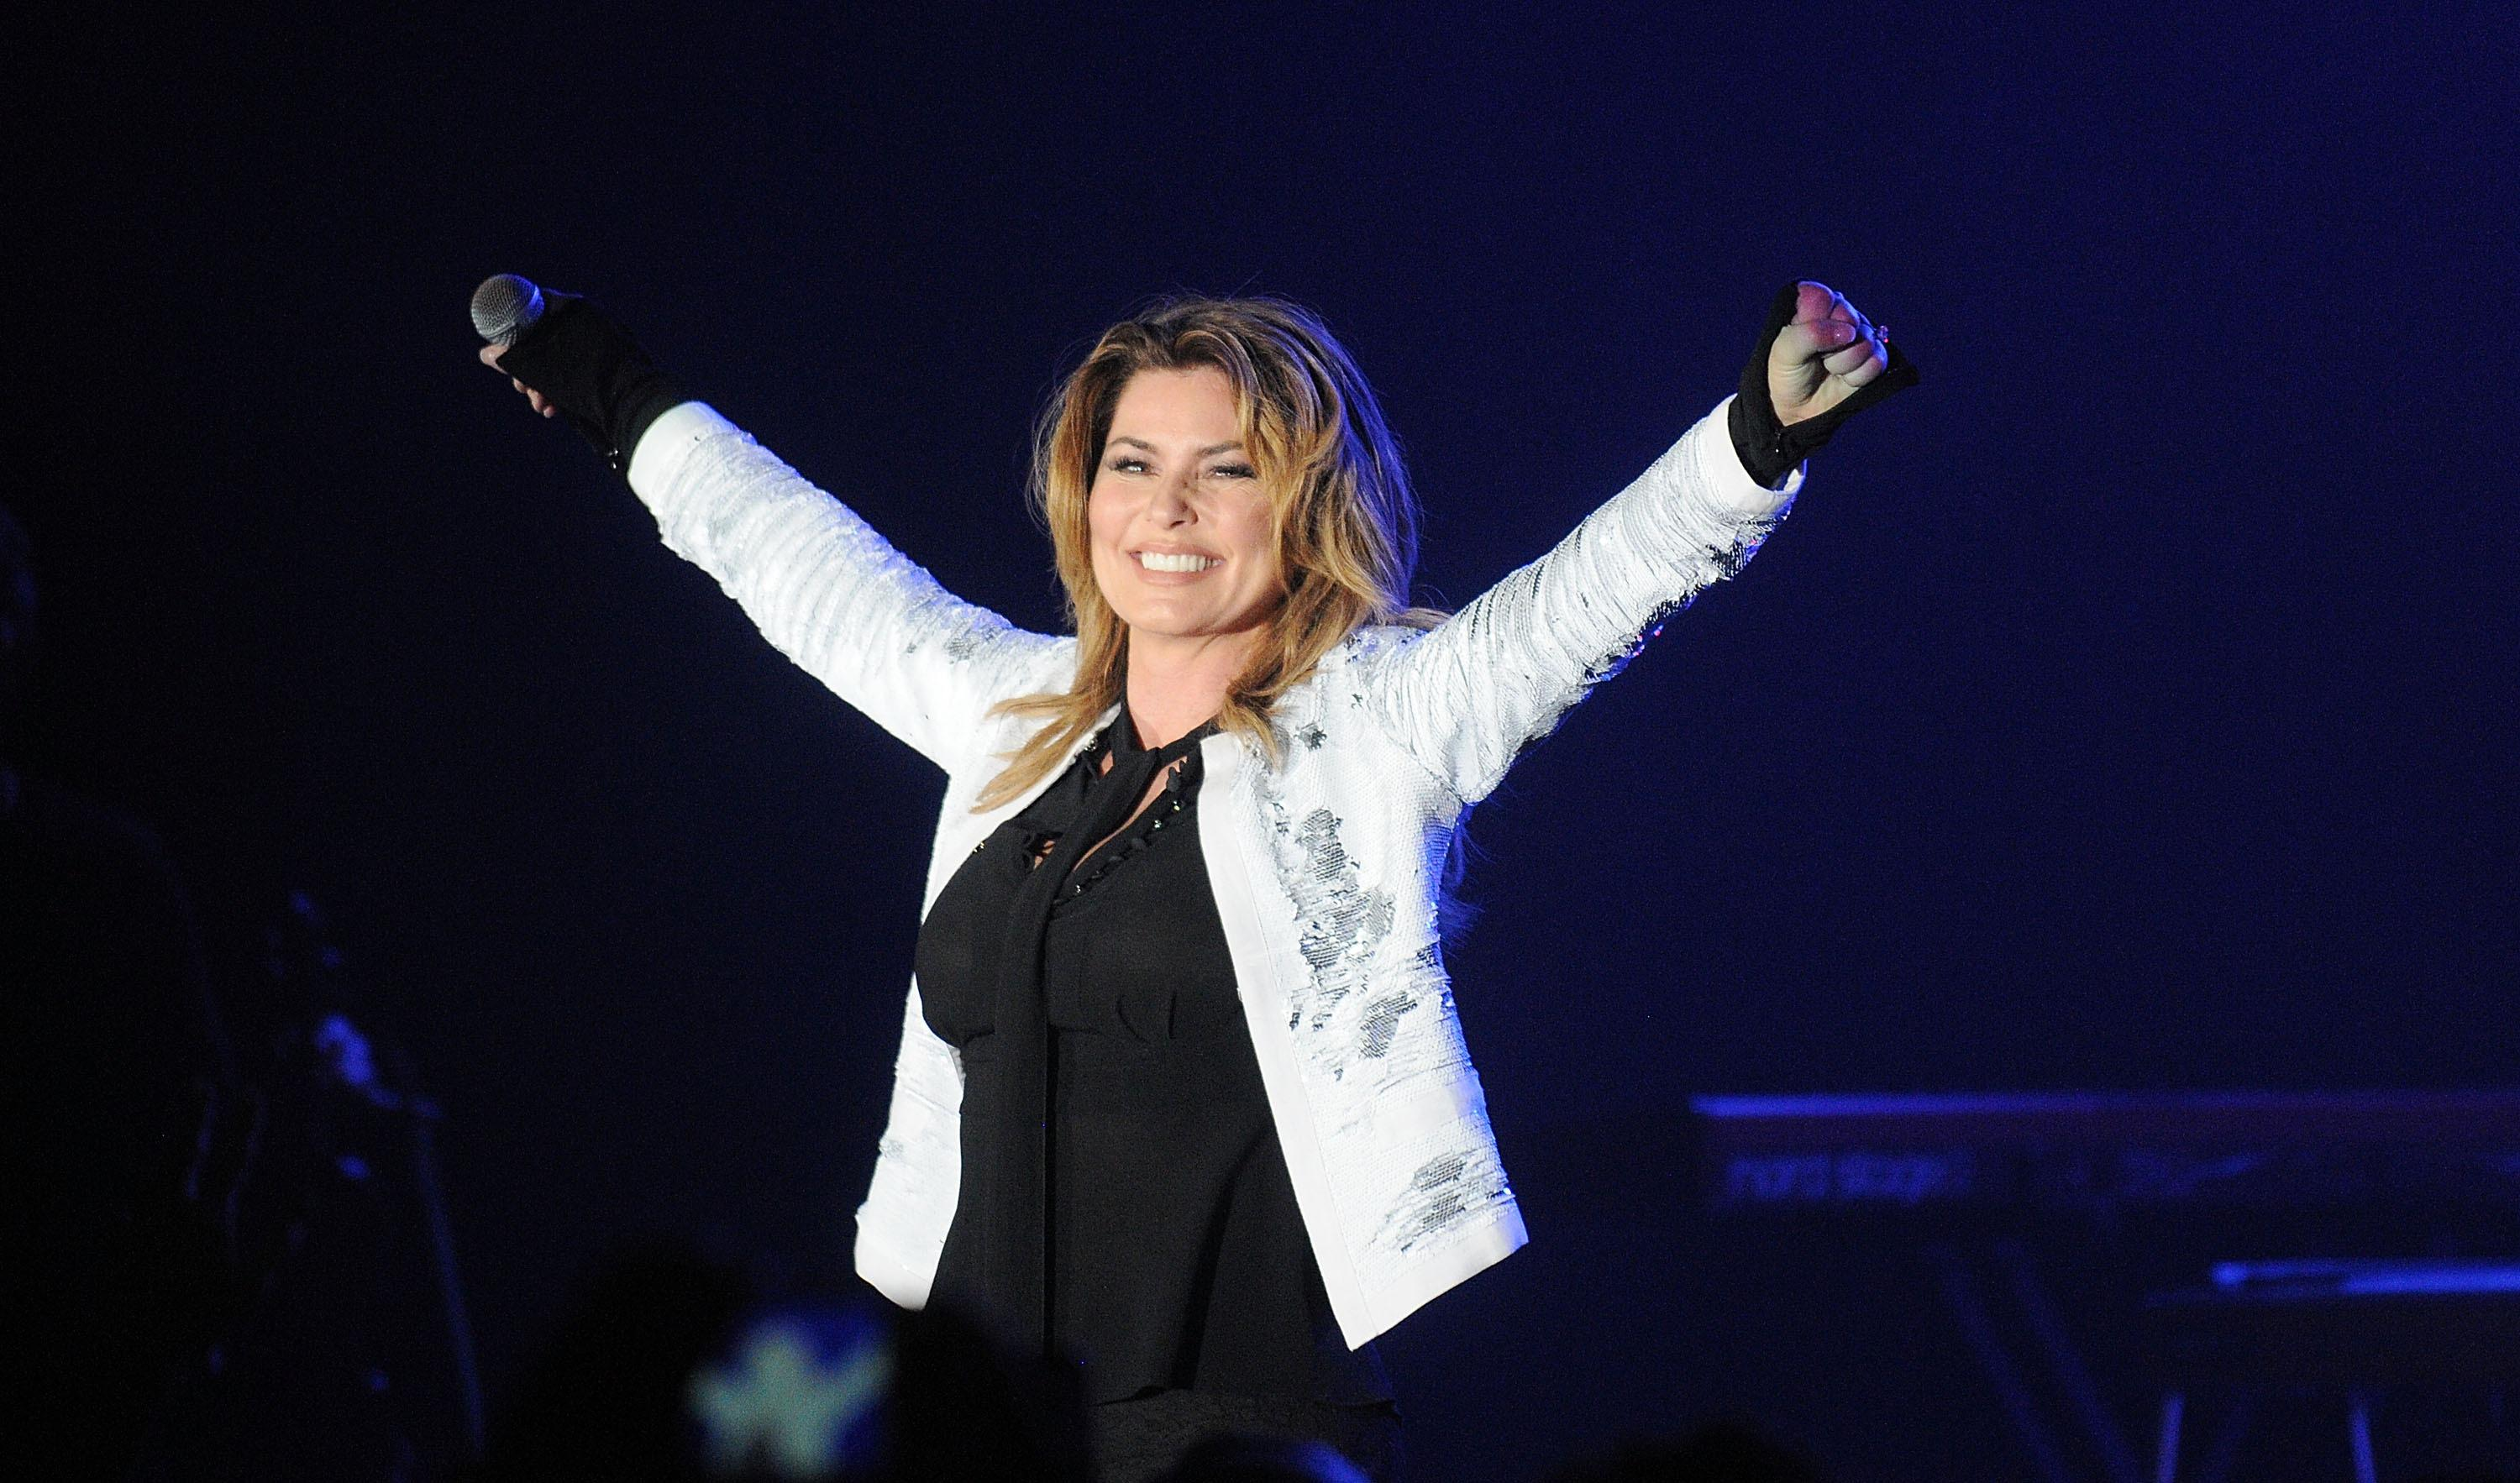 Shania Twain performing in 2017.